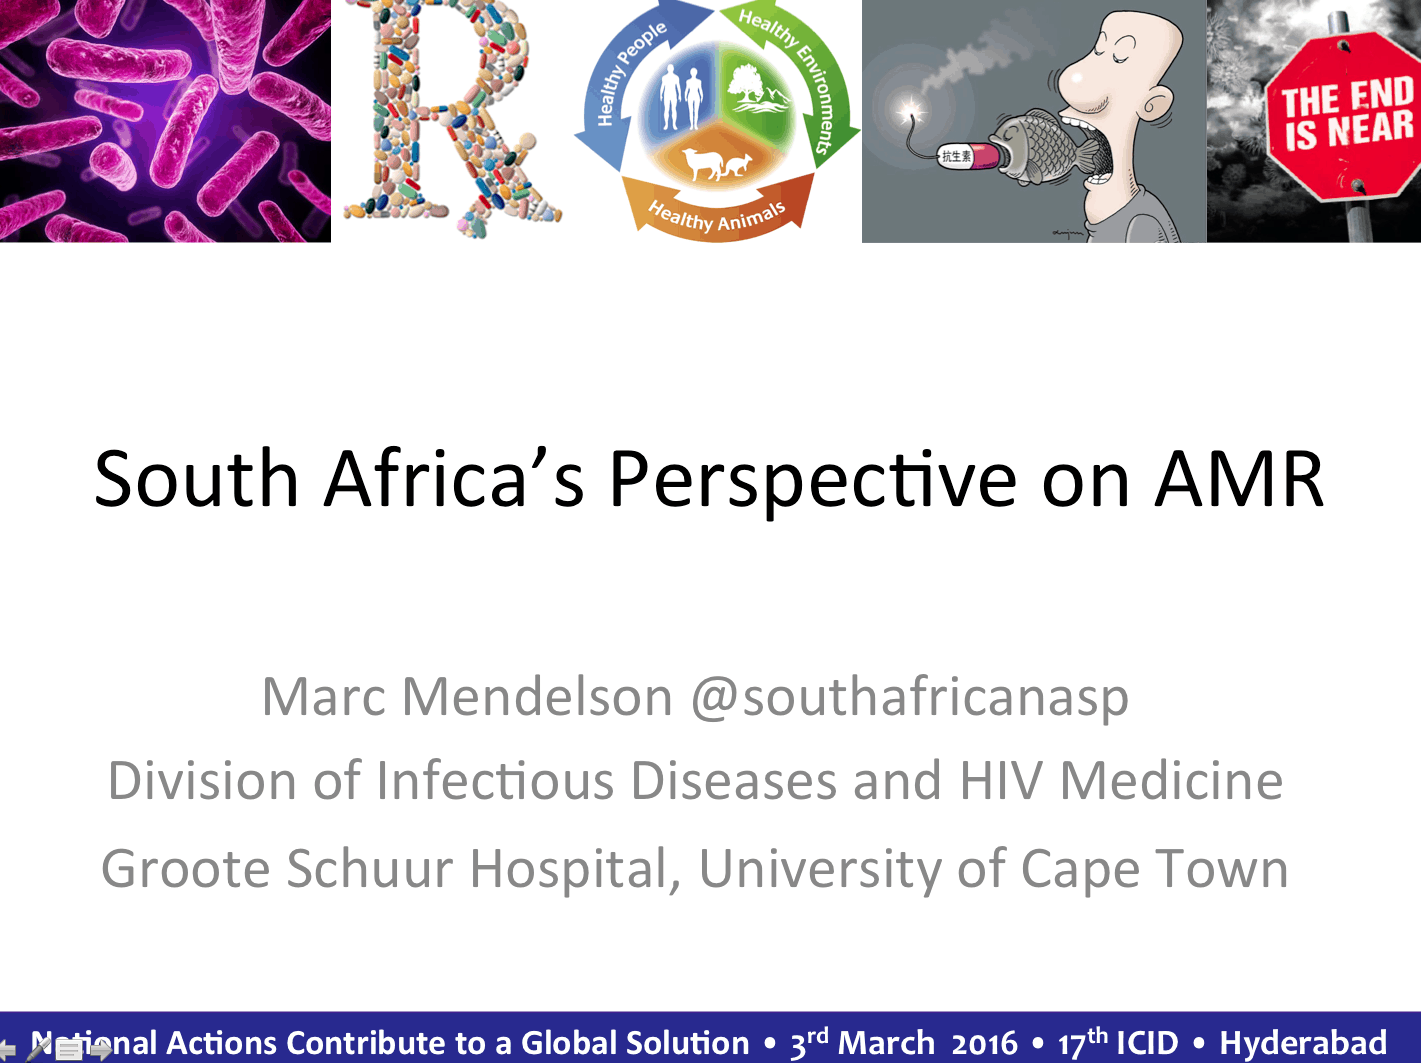 South Africa's Perspective on AMR